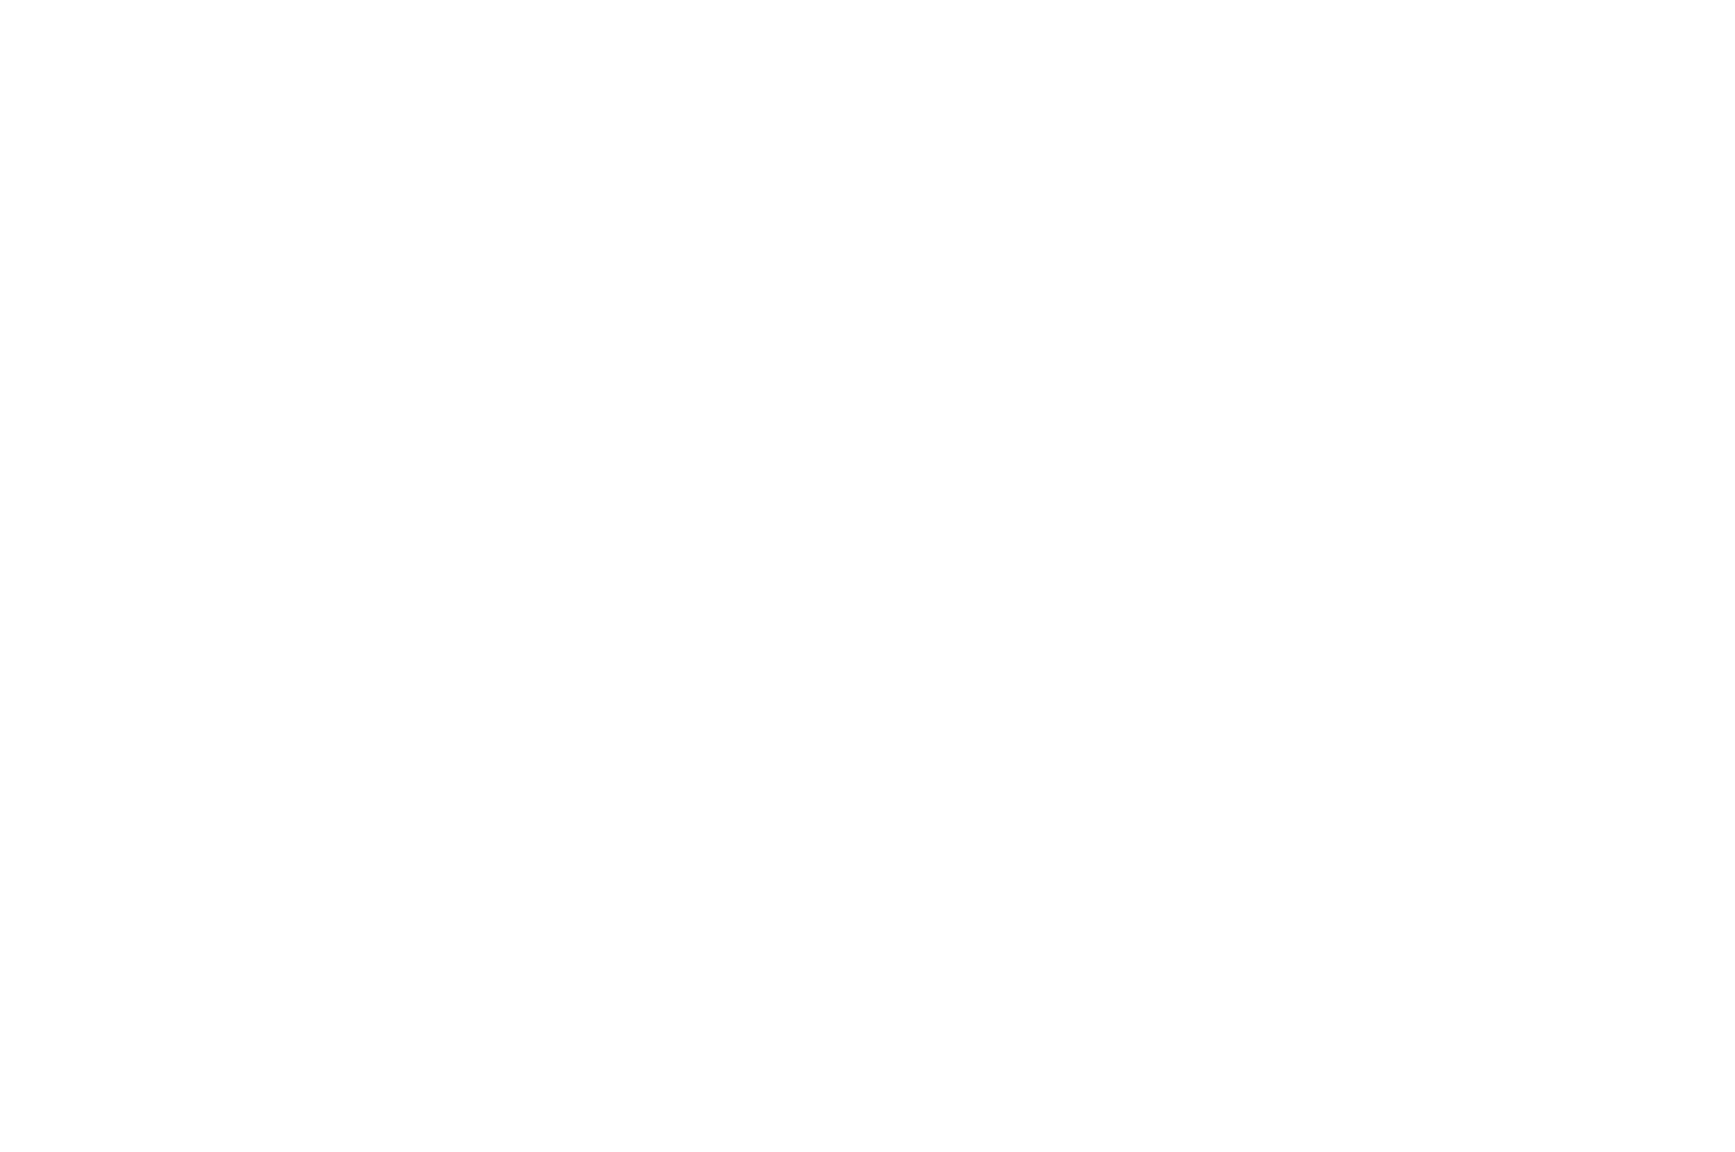 OFFICIAL SELECTION - Short of the Month - July Online Short Film Festival - 2016.png